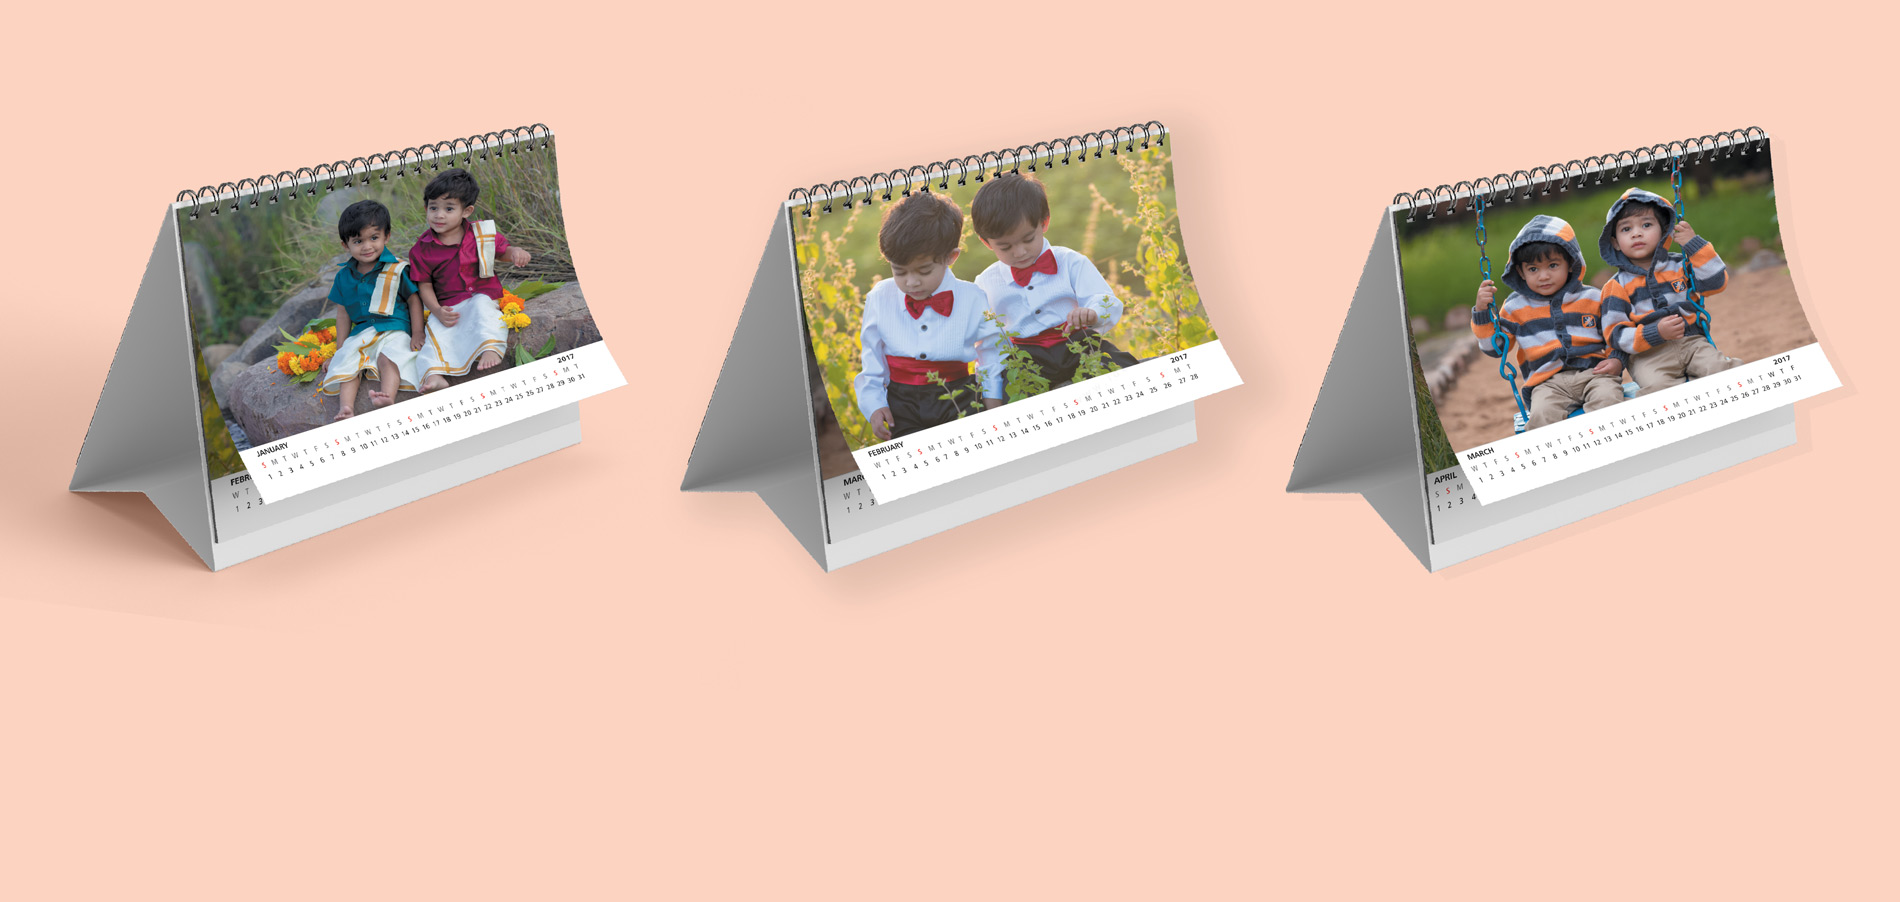 kids-desk-top-calendar-design,-wall-calendar-design-india,-new-year-calendars-design-local,-hyderarbad